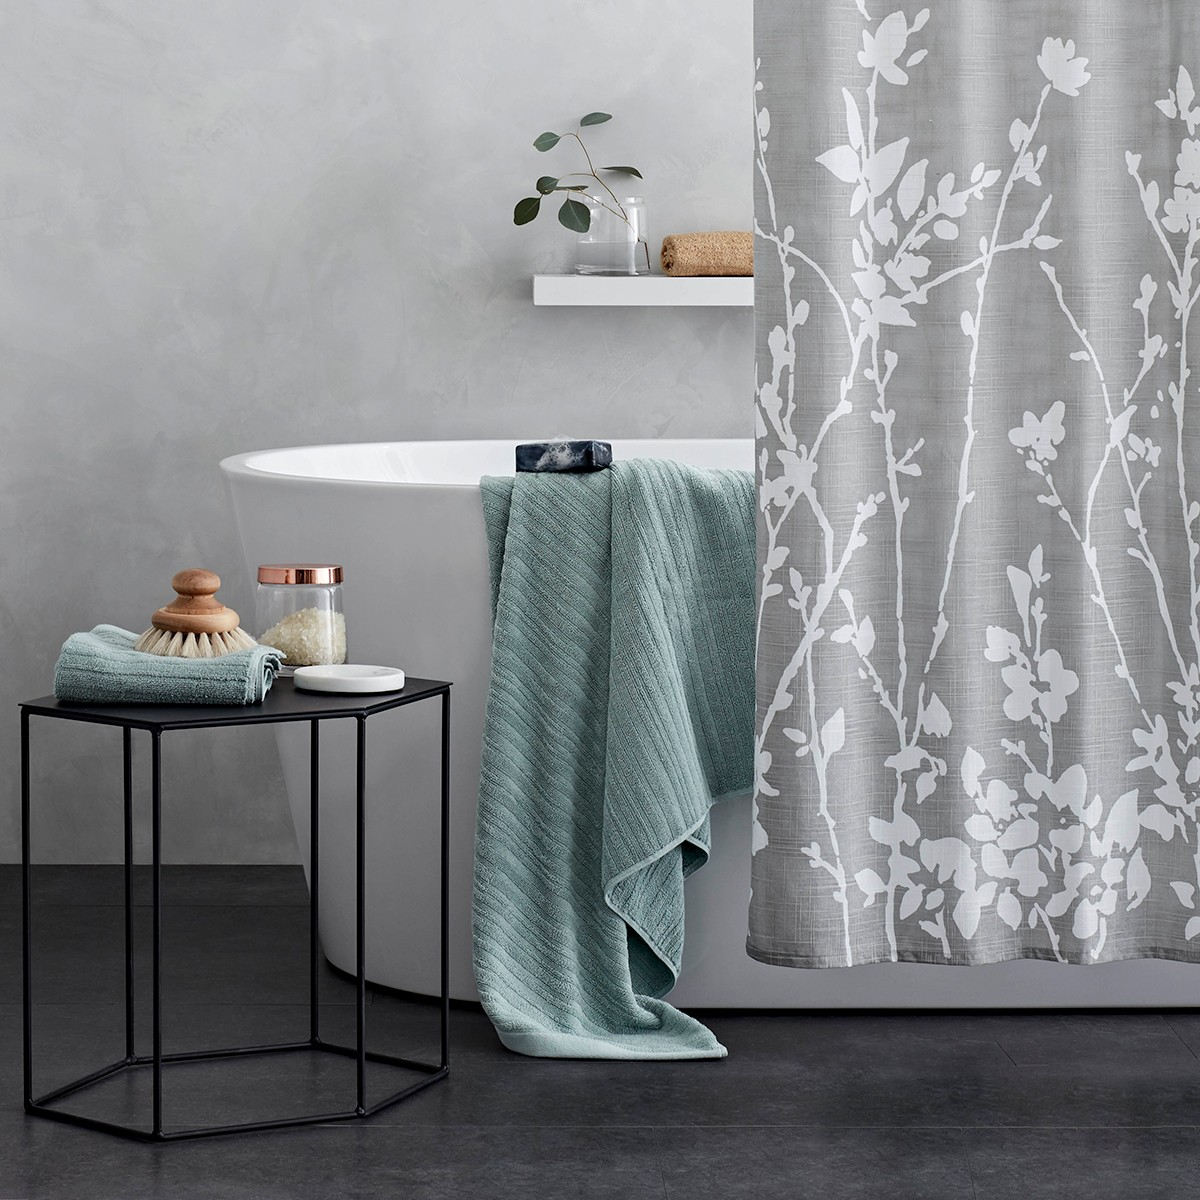 target debuts new project furniture and home decor love bathroom accessories accent table black glass tables living room rose gold pieces for lucite console concrete outdoor